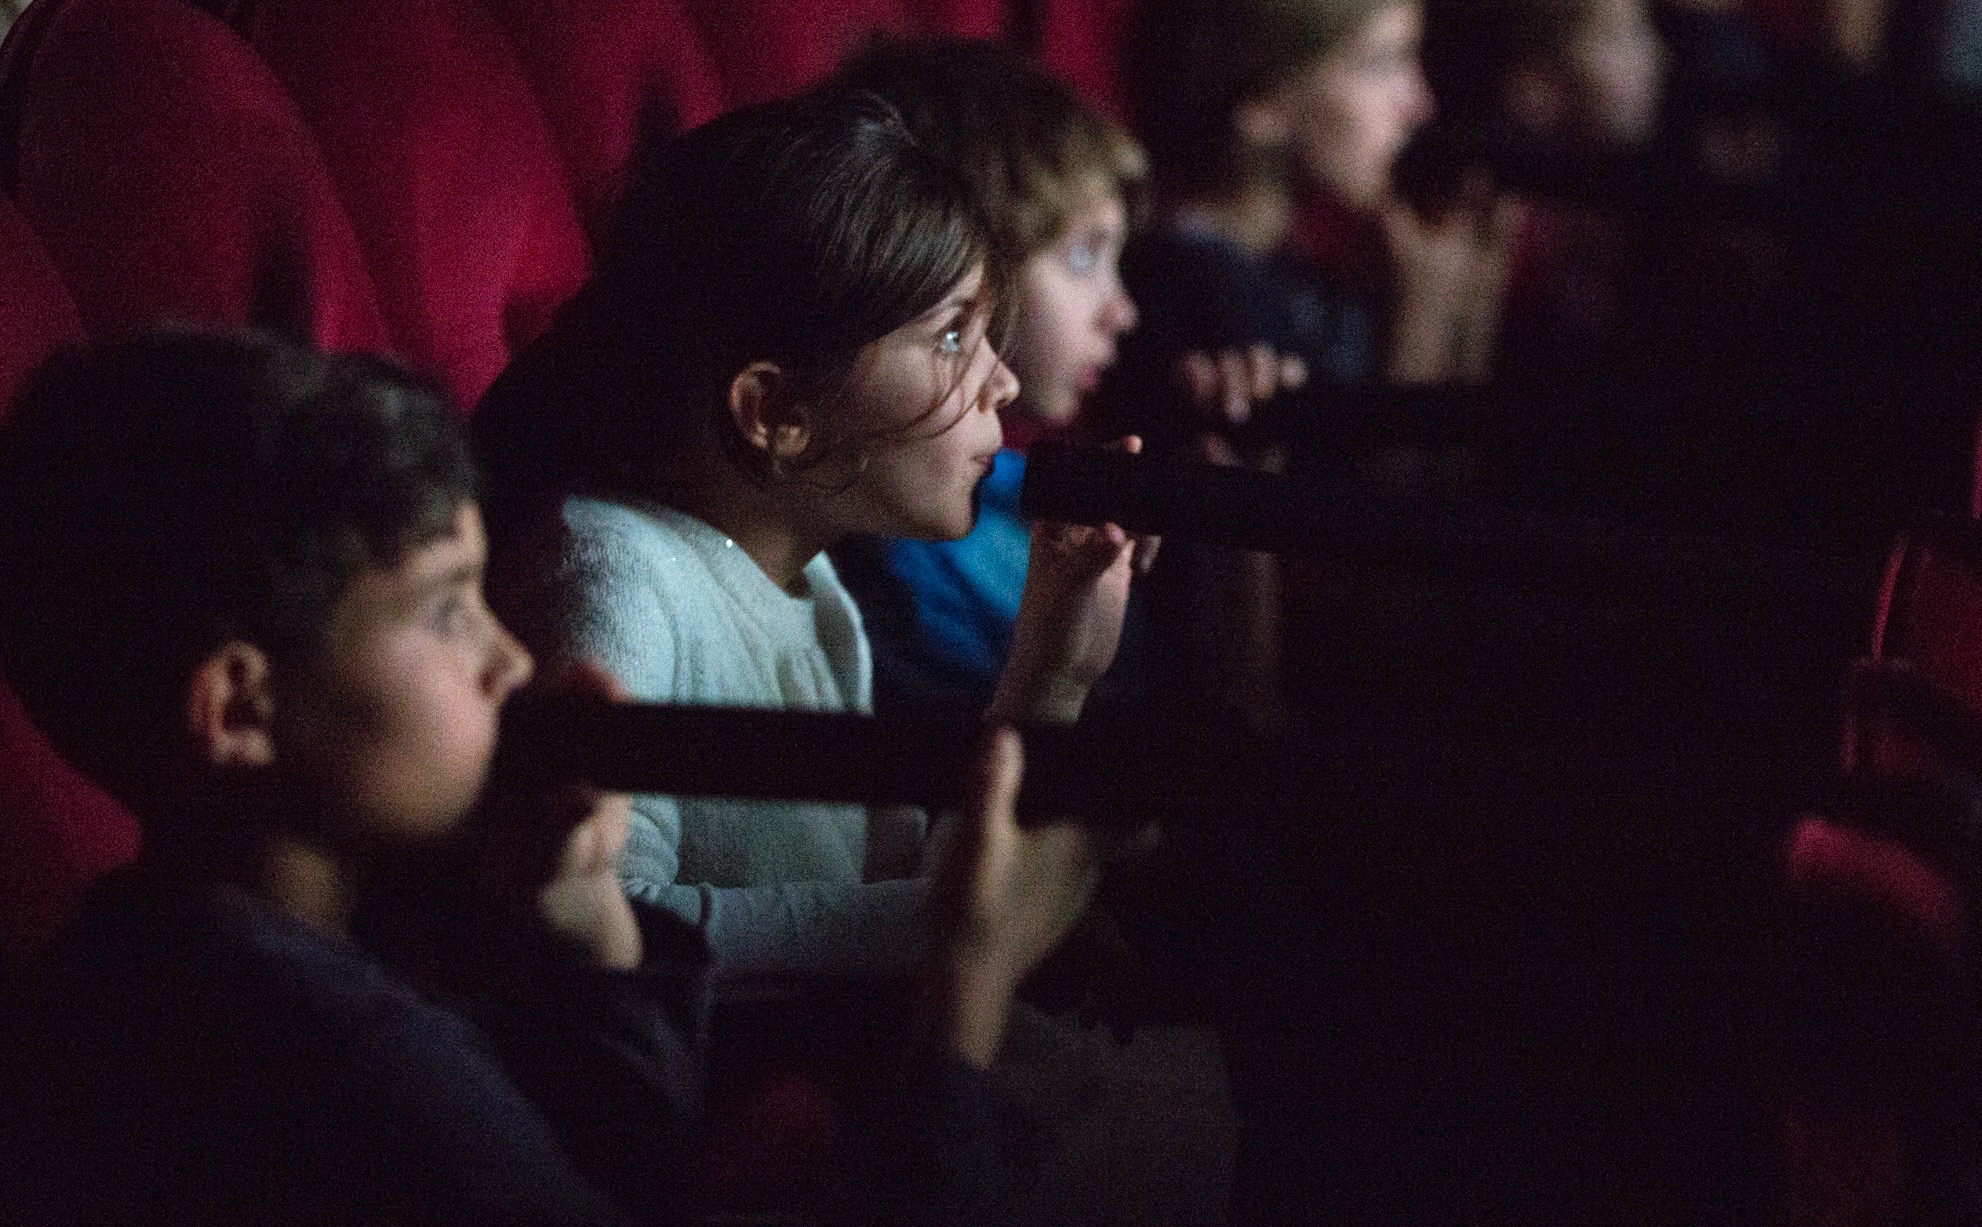 Only the children see, and only the children speak, in 'Blind Cinema.' (Photo: Maria Baranova)